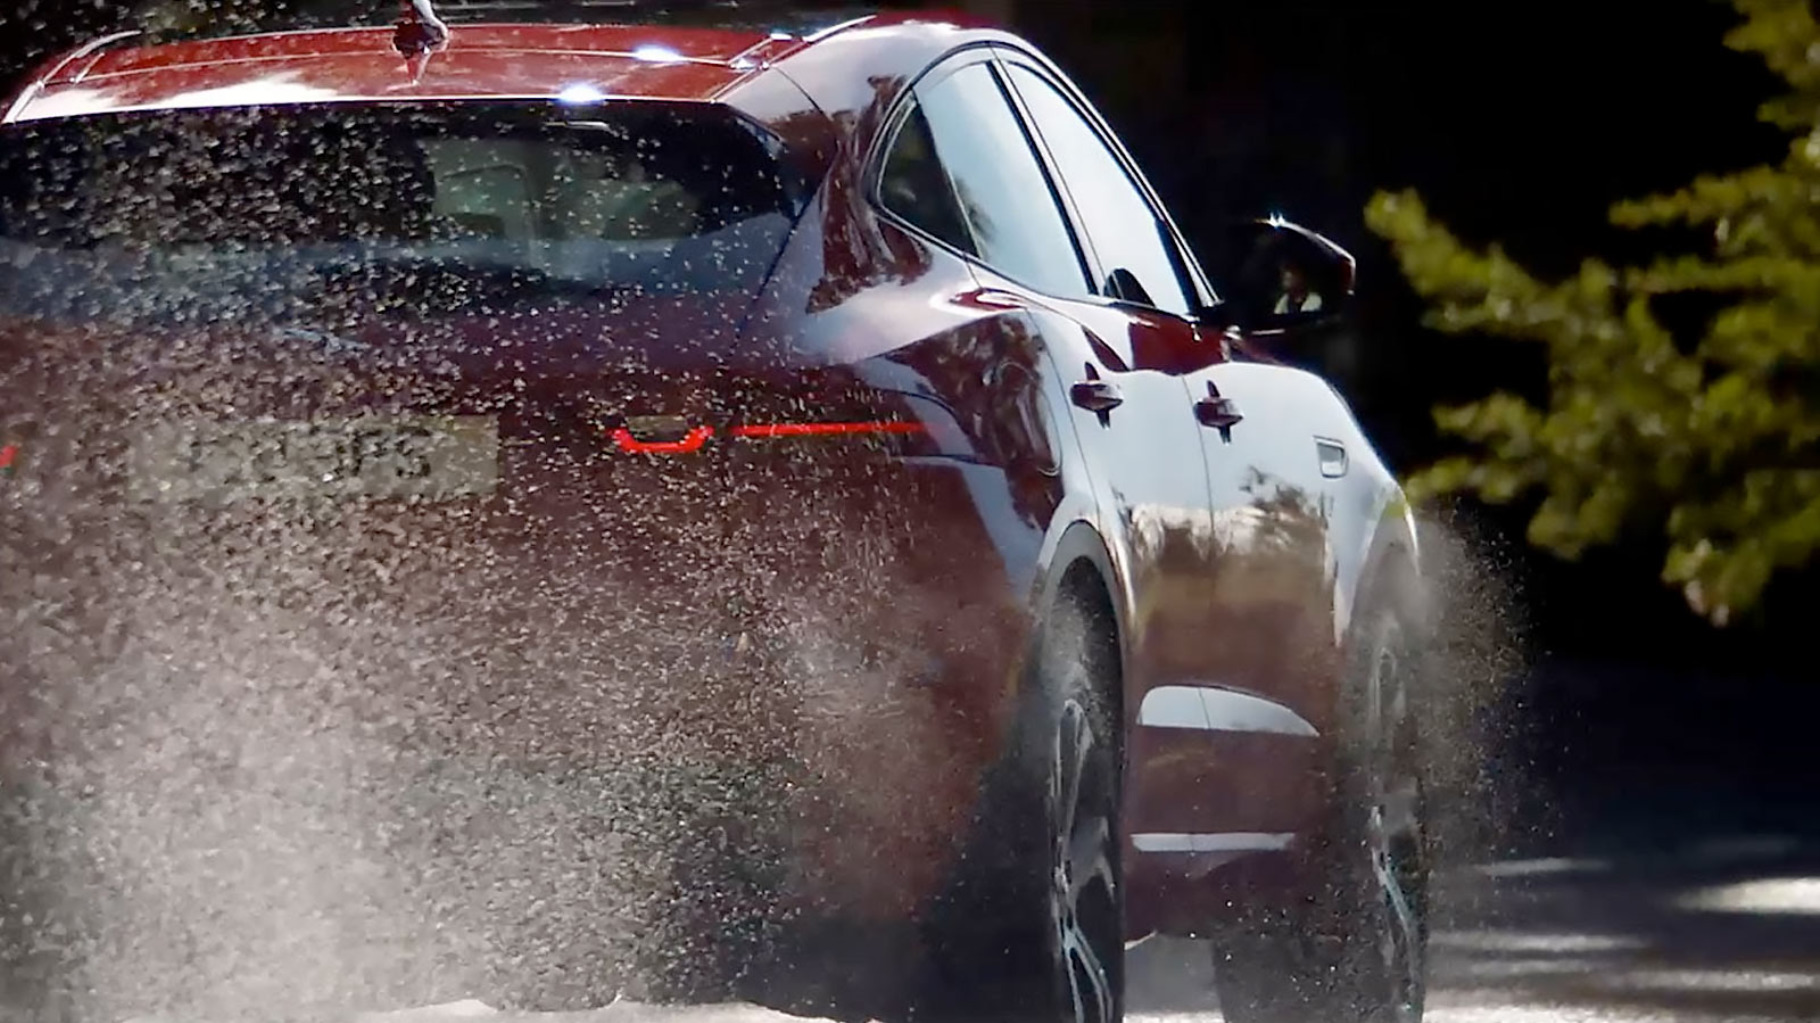 Jaguar E-Pace driving off-road through a forest track.